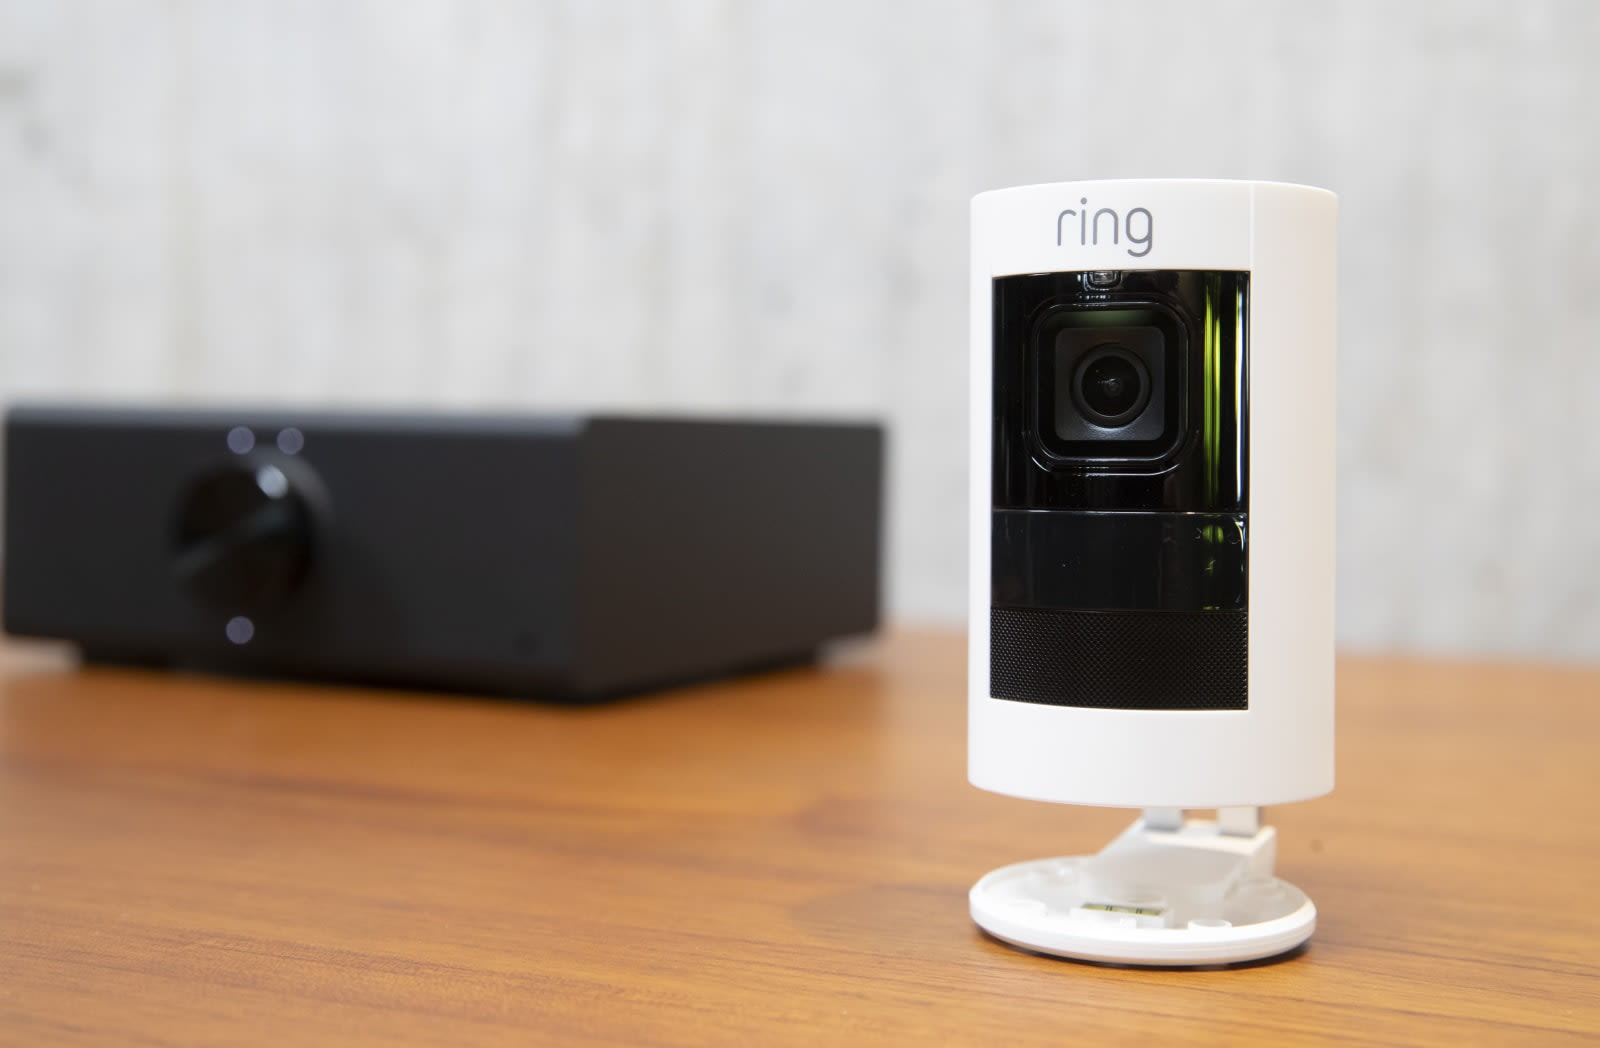 Amazon asks police to advertise Ring cameras as part of